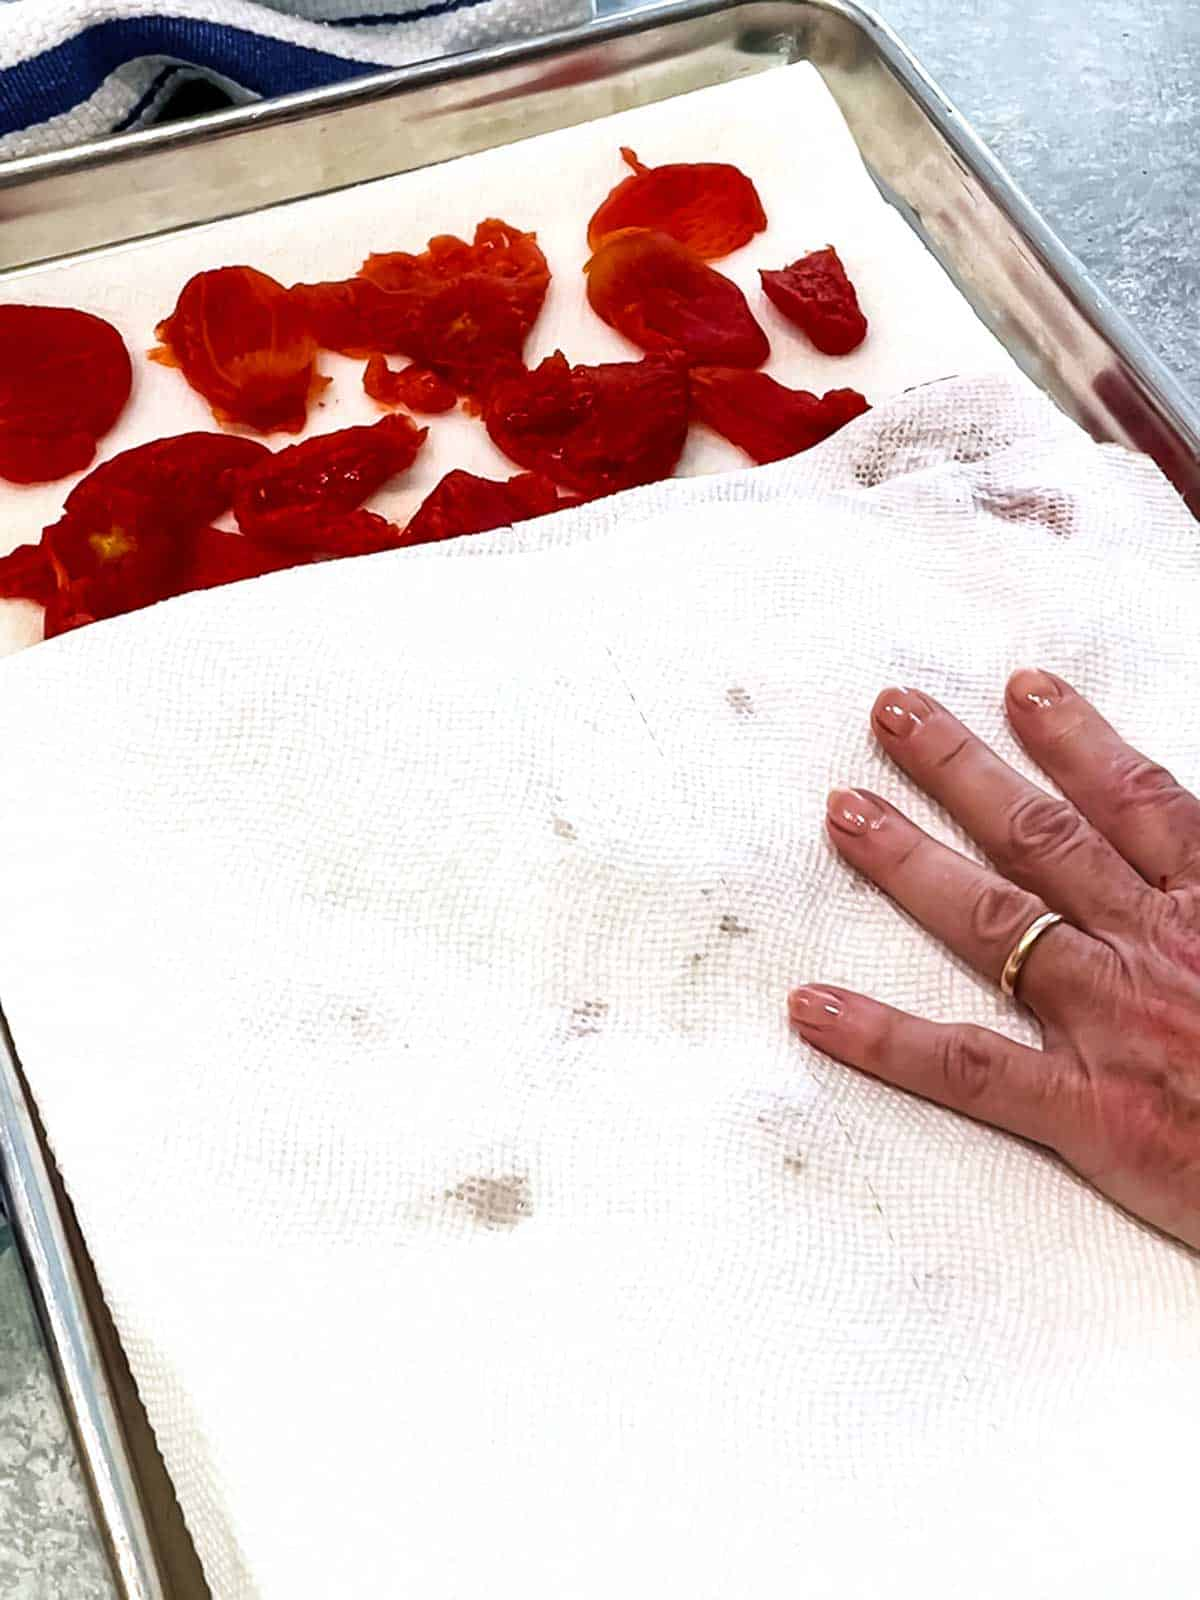 Drying the tomatoes with paper towels